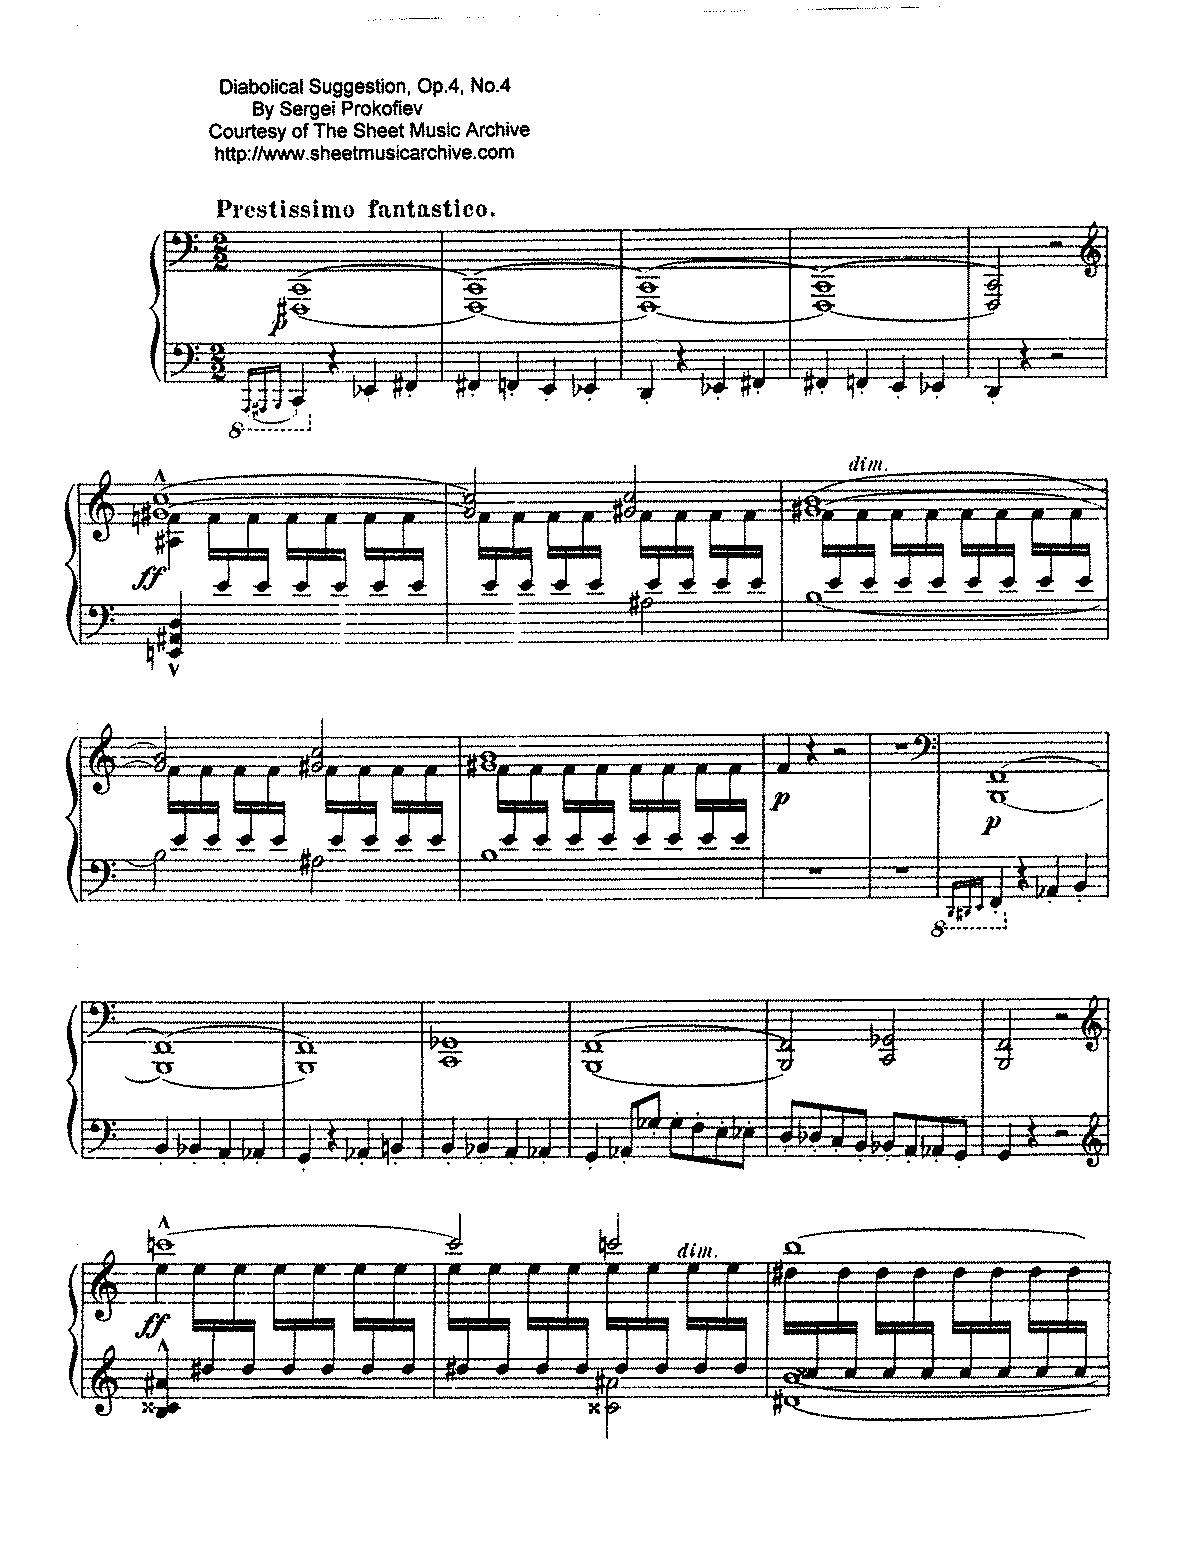 Prokofiev - Diabolical Suggestion op4 no 4.pdf